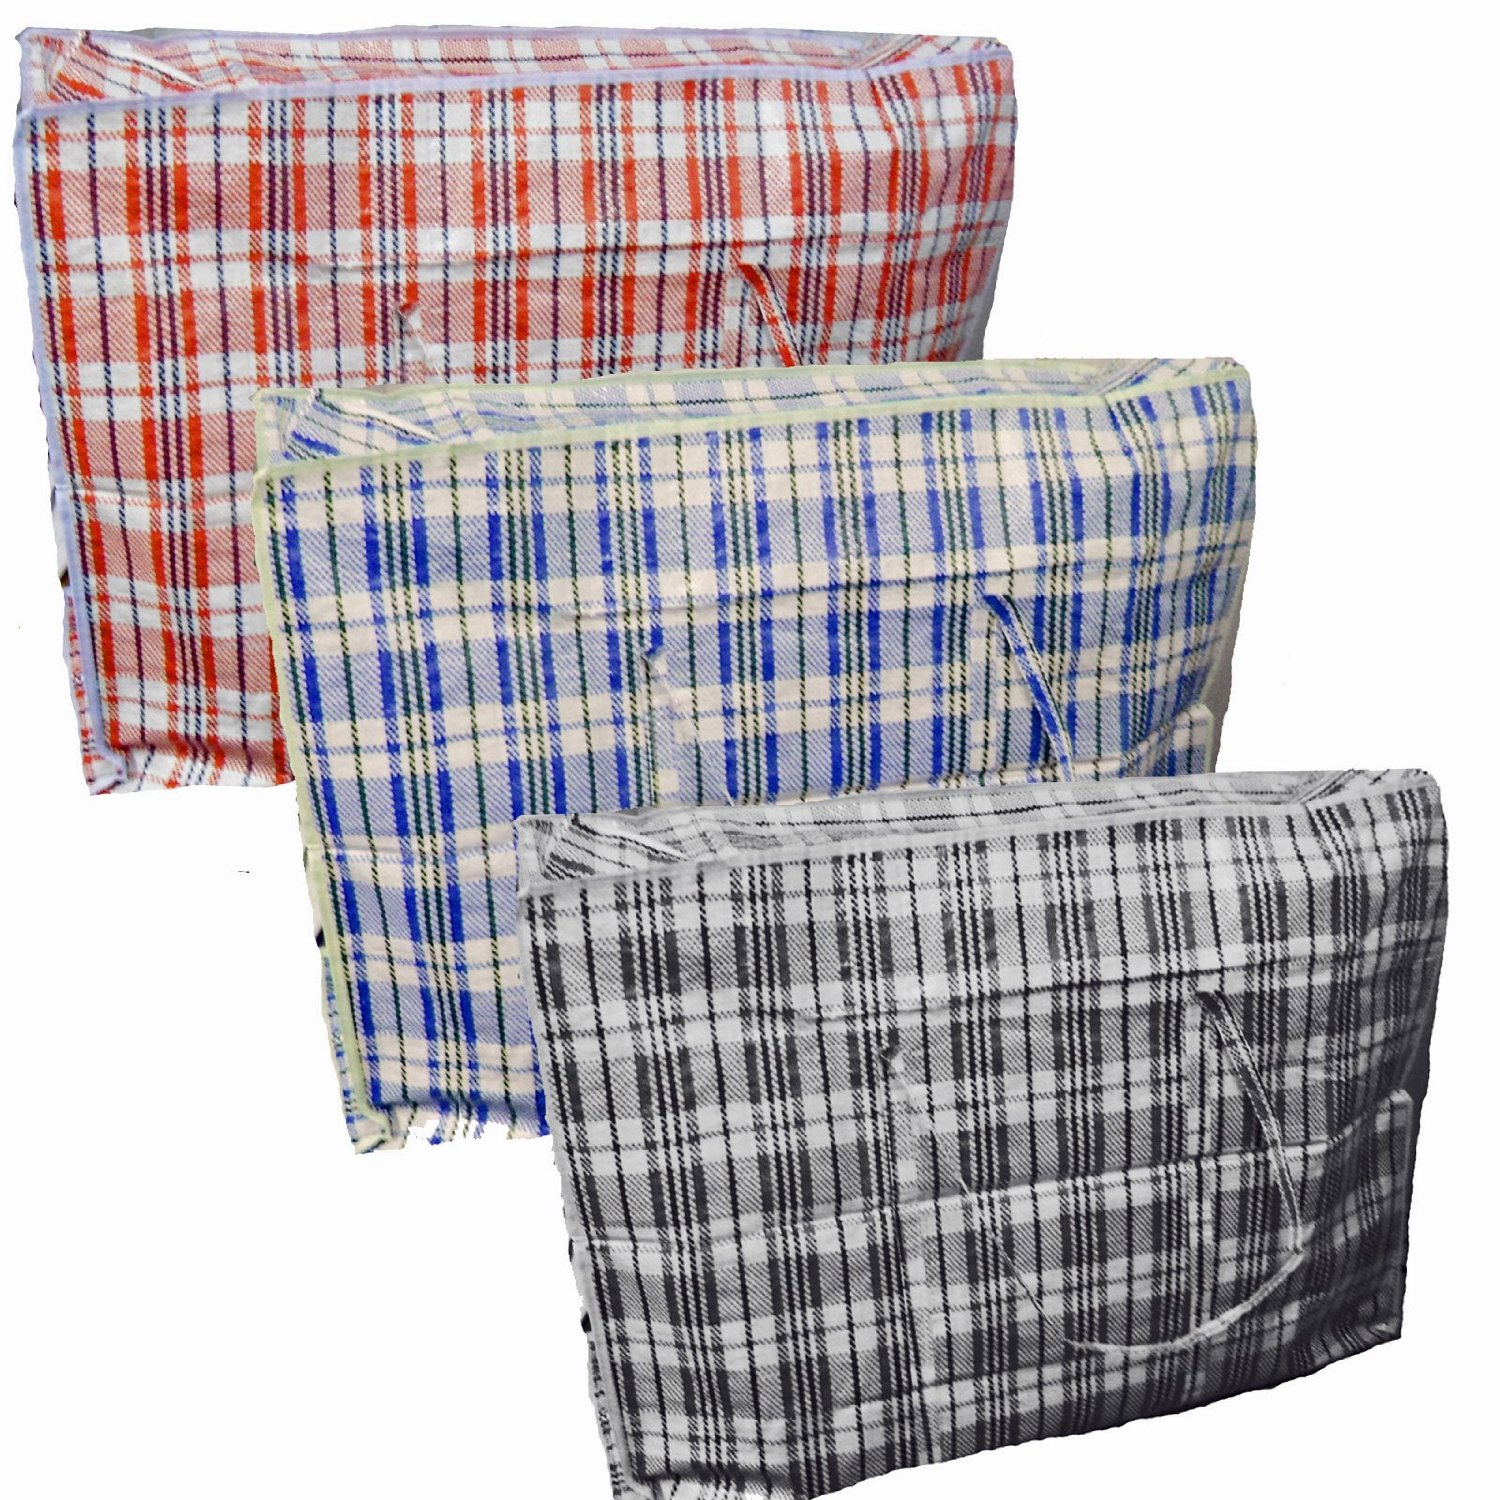 Square Laundry Bags